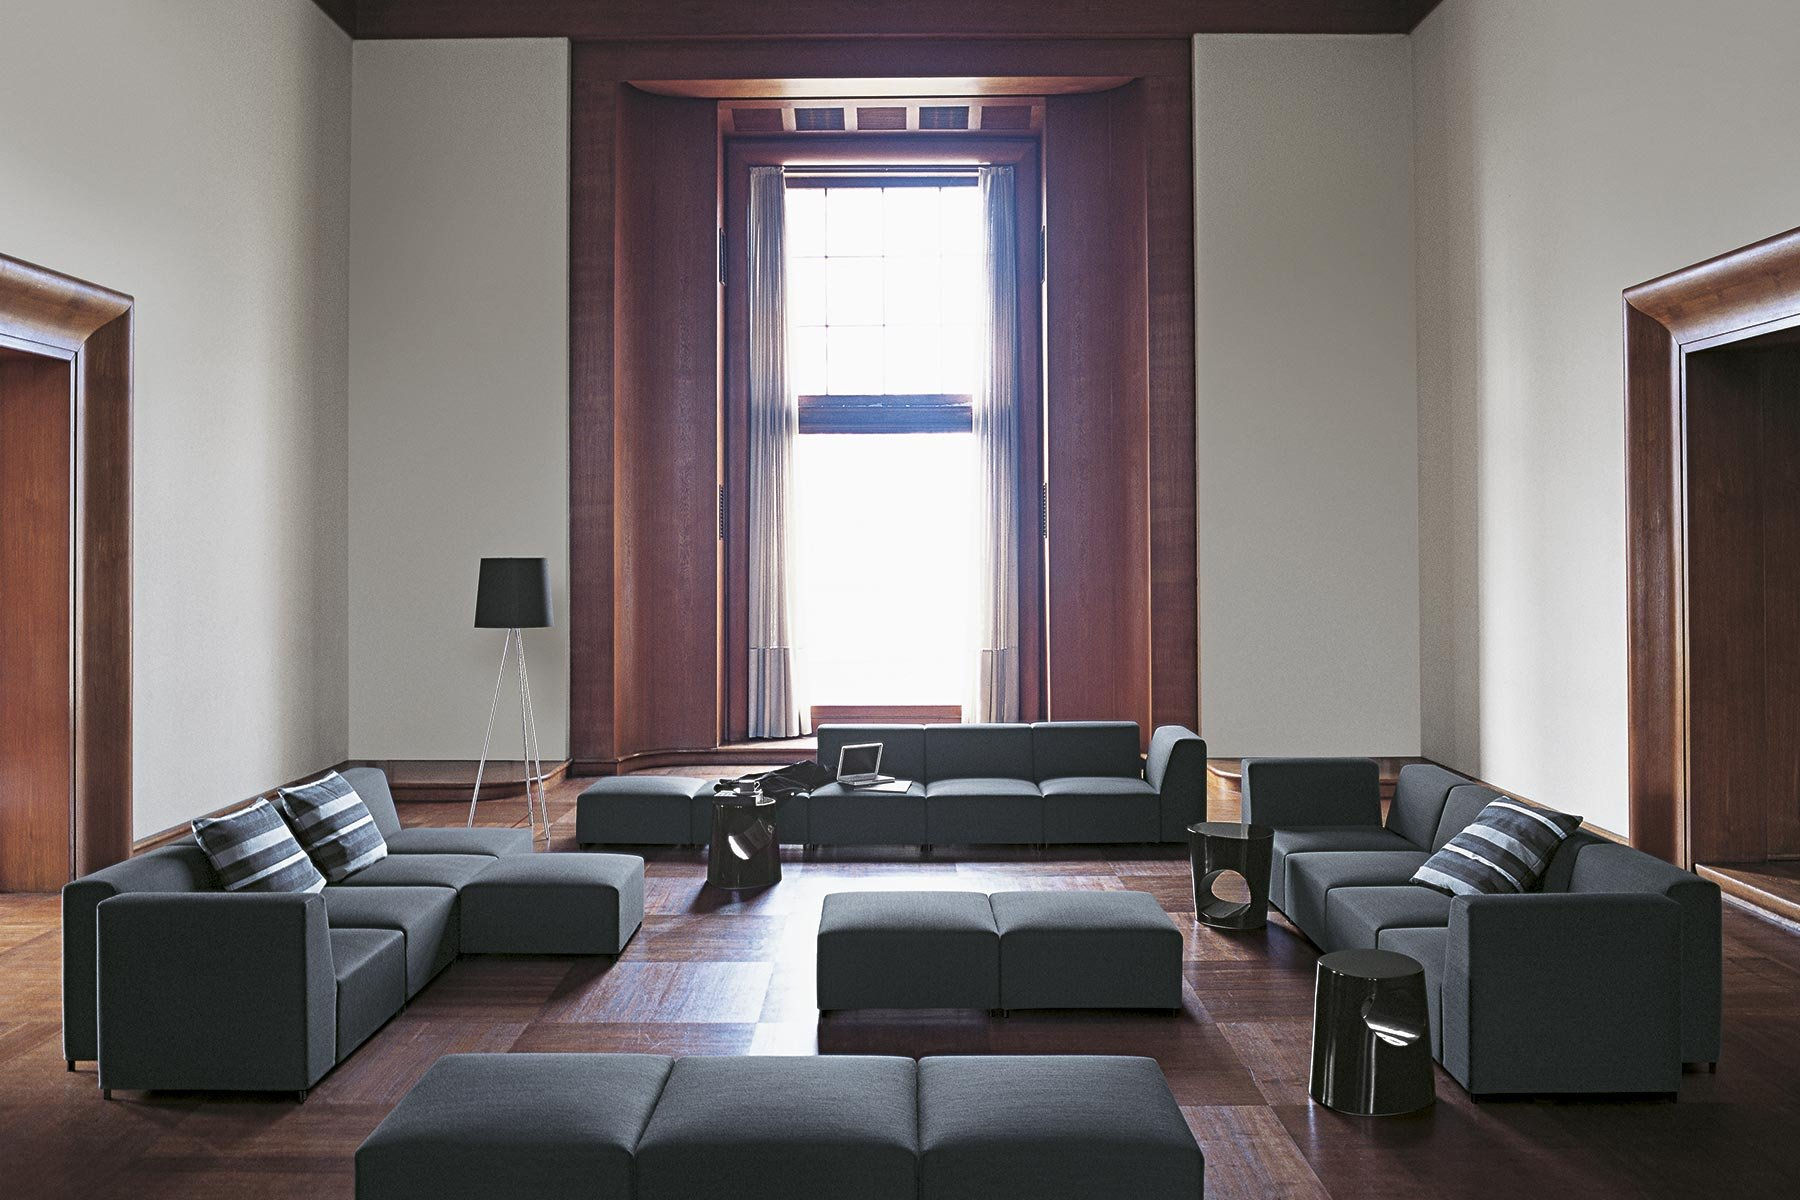 Quadro Sofa from Tacchini, designed by Pietro Arosio